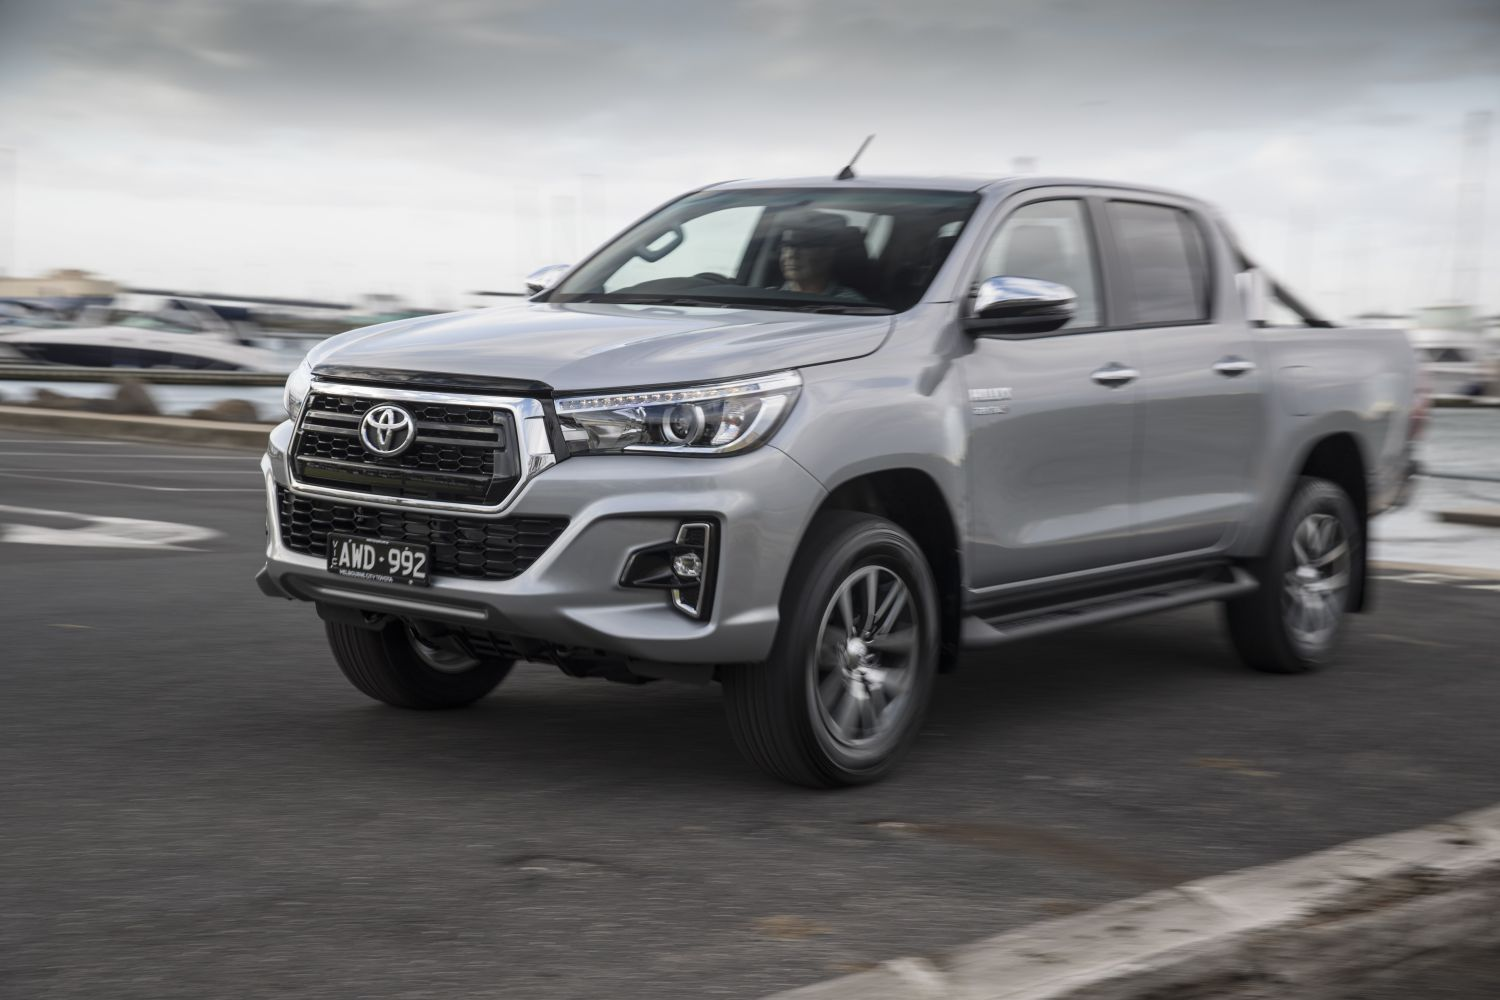 2019 Toyota HiLux updates and pricing - CarConversation